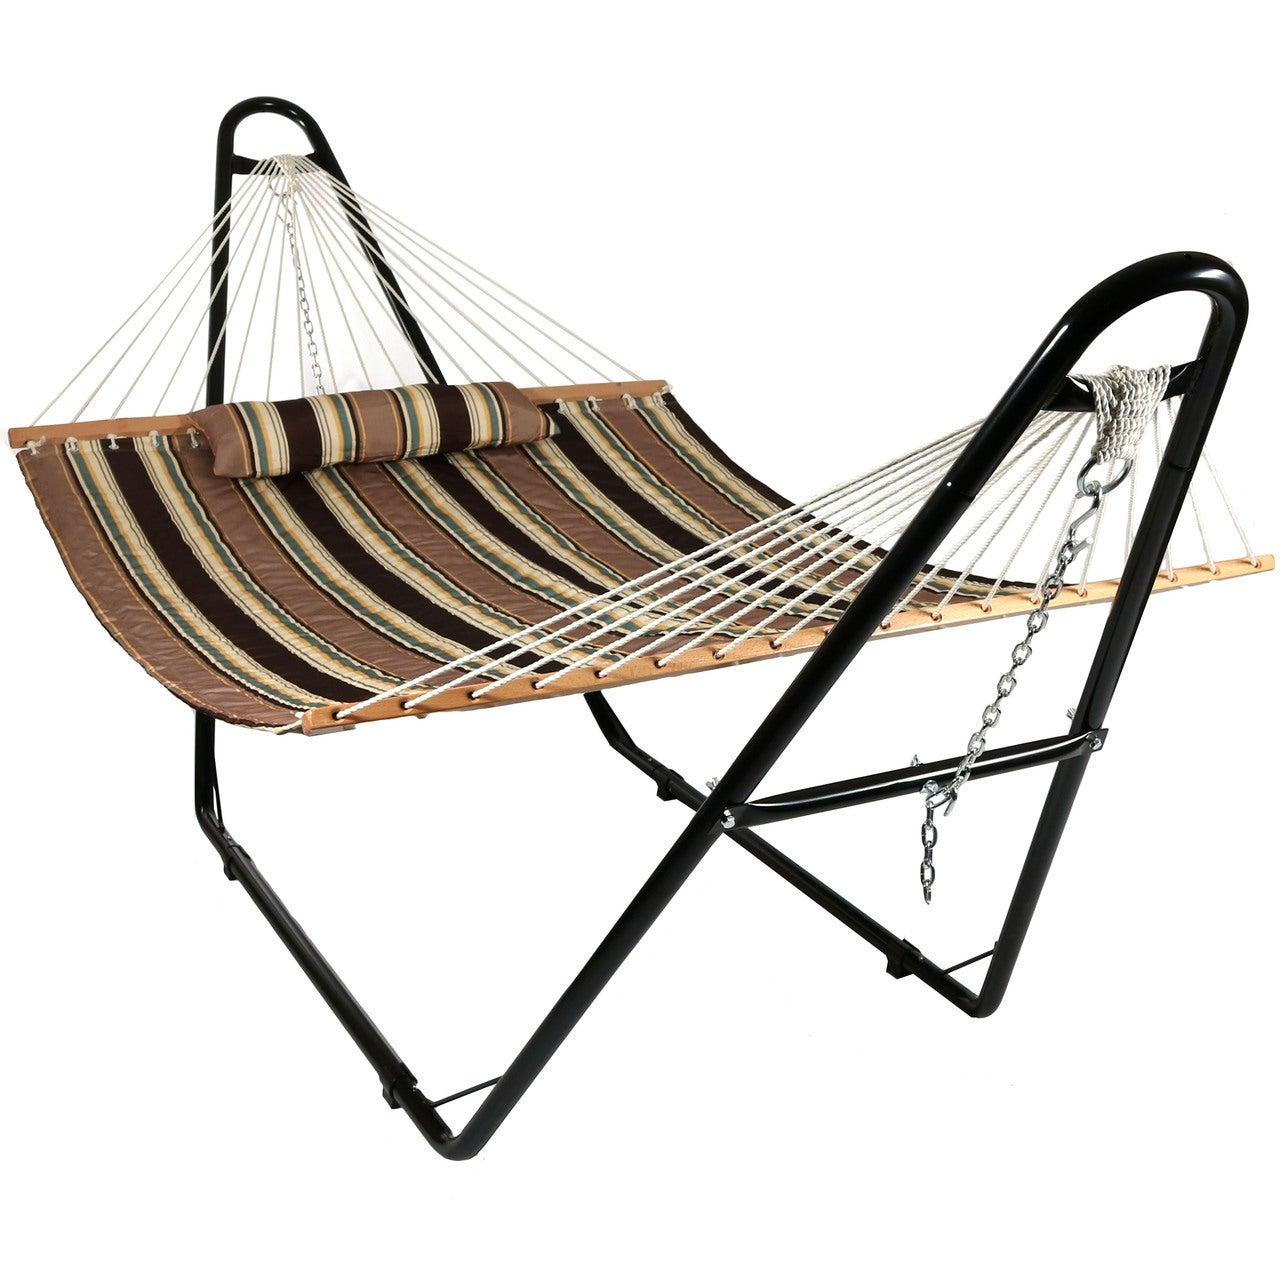 Sunnydaze Quilted Double Fabric 2-Person Hammock with Multi-Use Universal Stand - Thumbnail 13